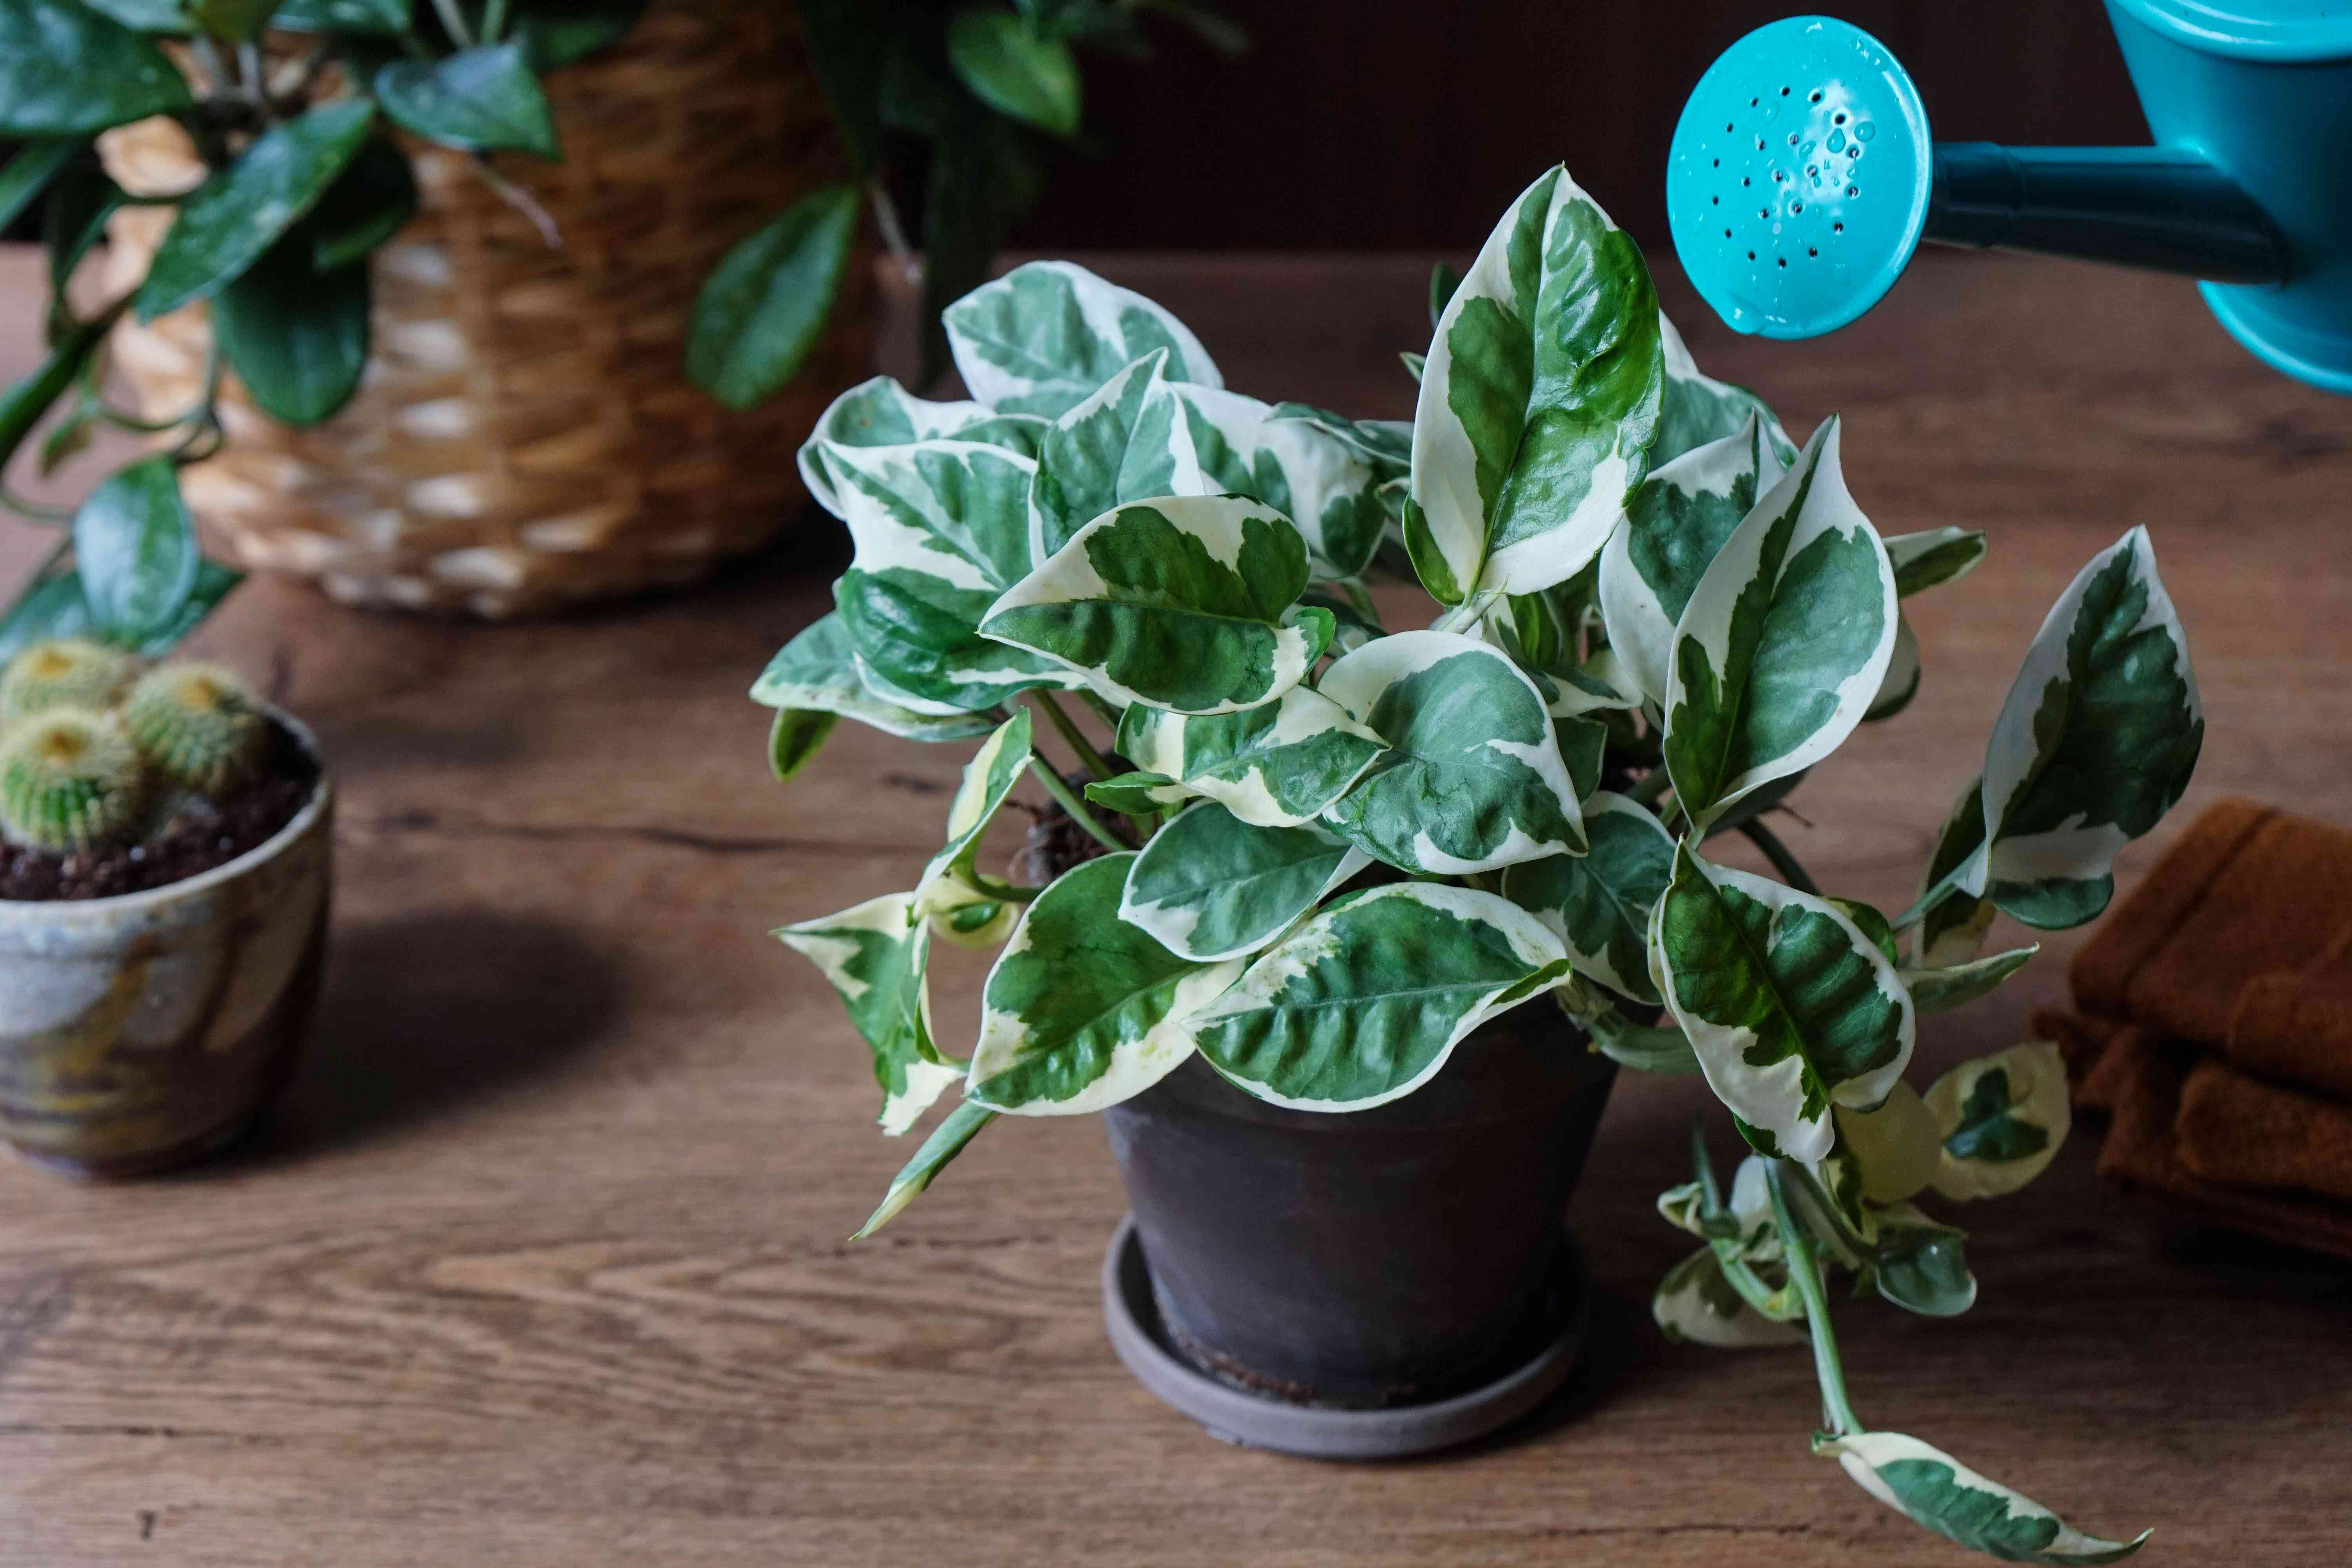 blue metal can used to water white and green pothos house plant